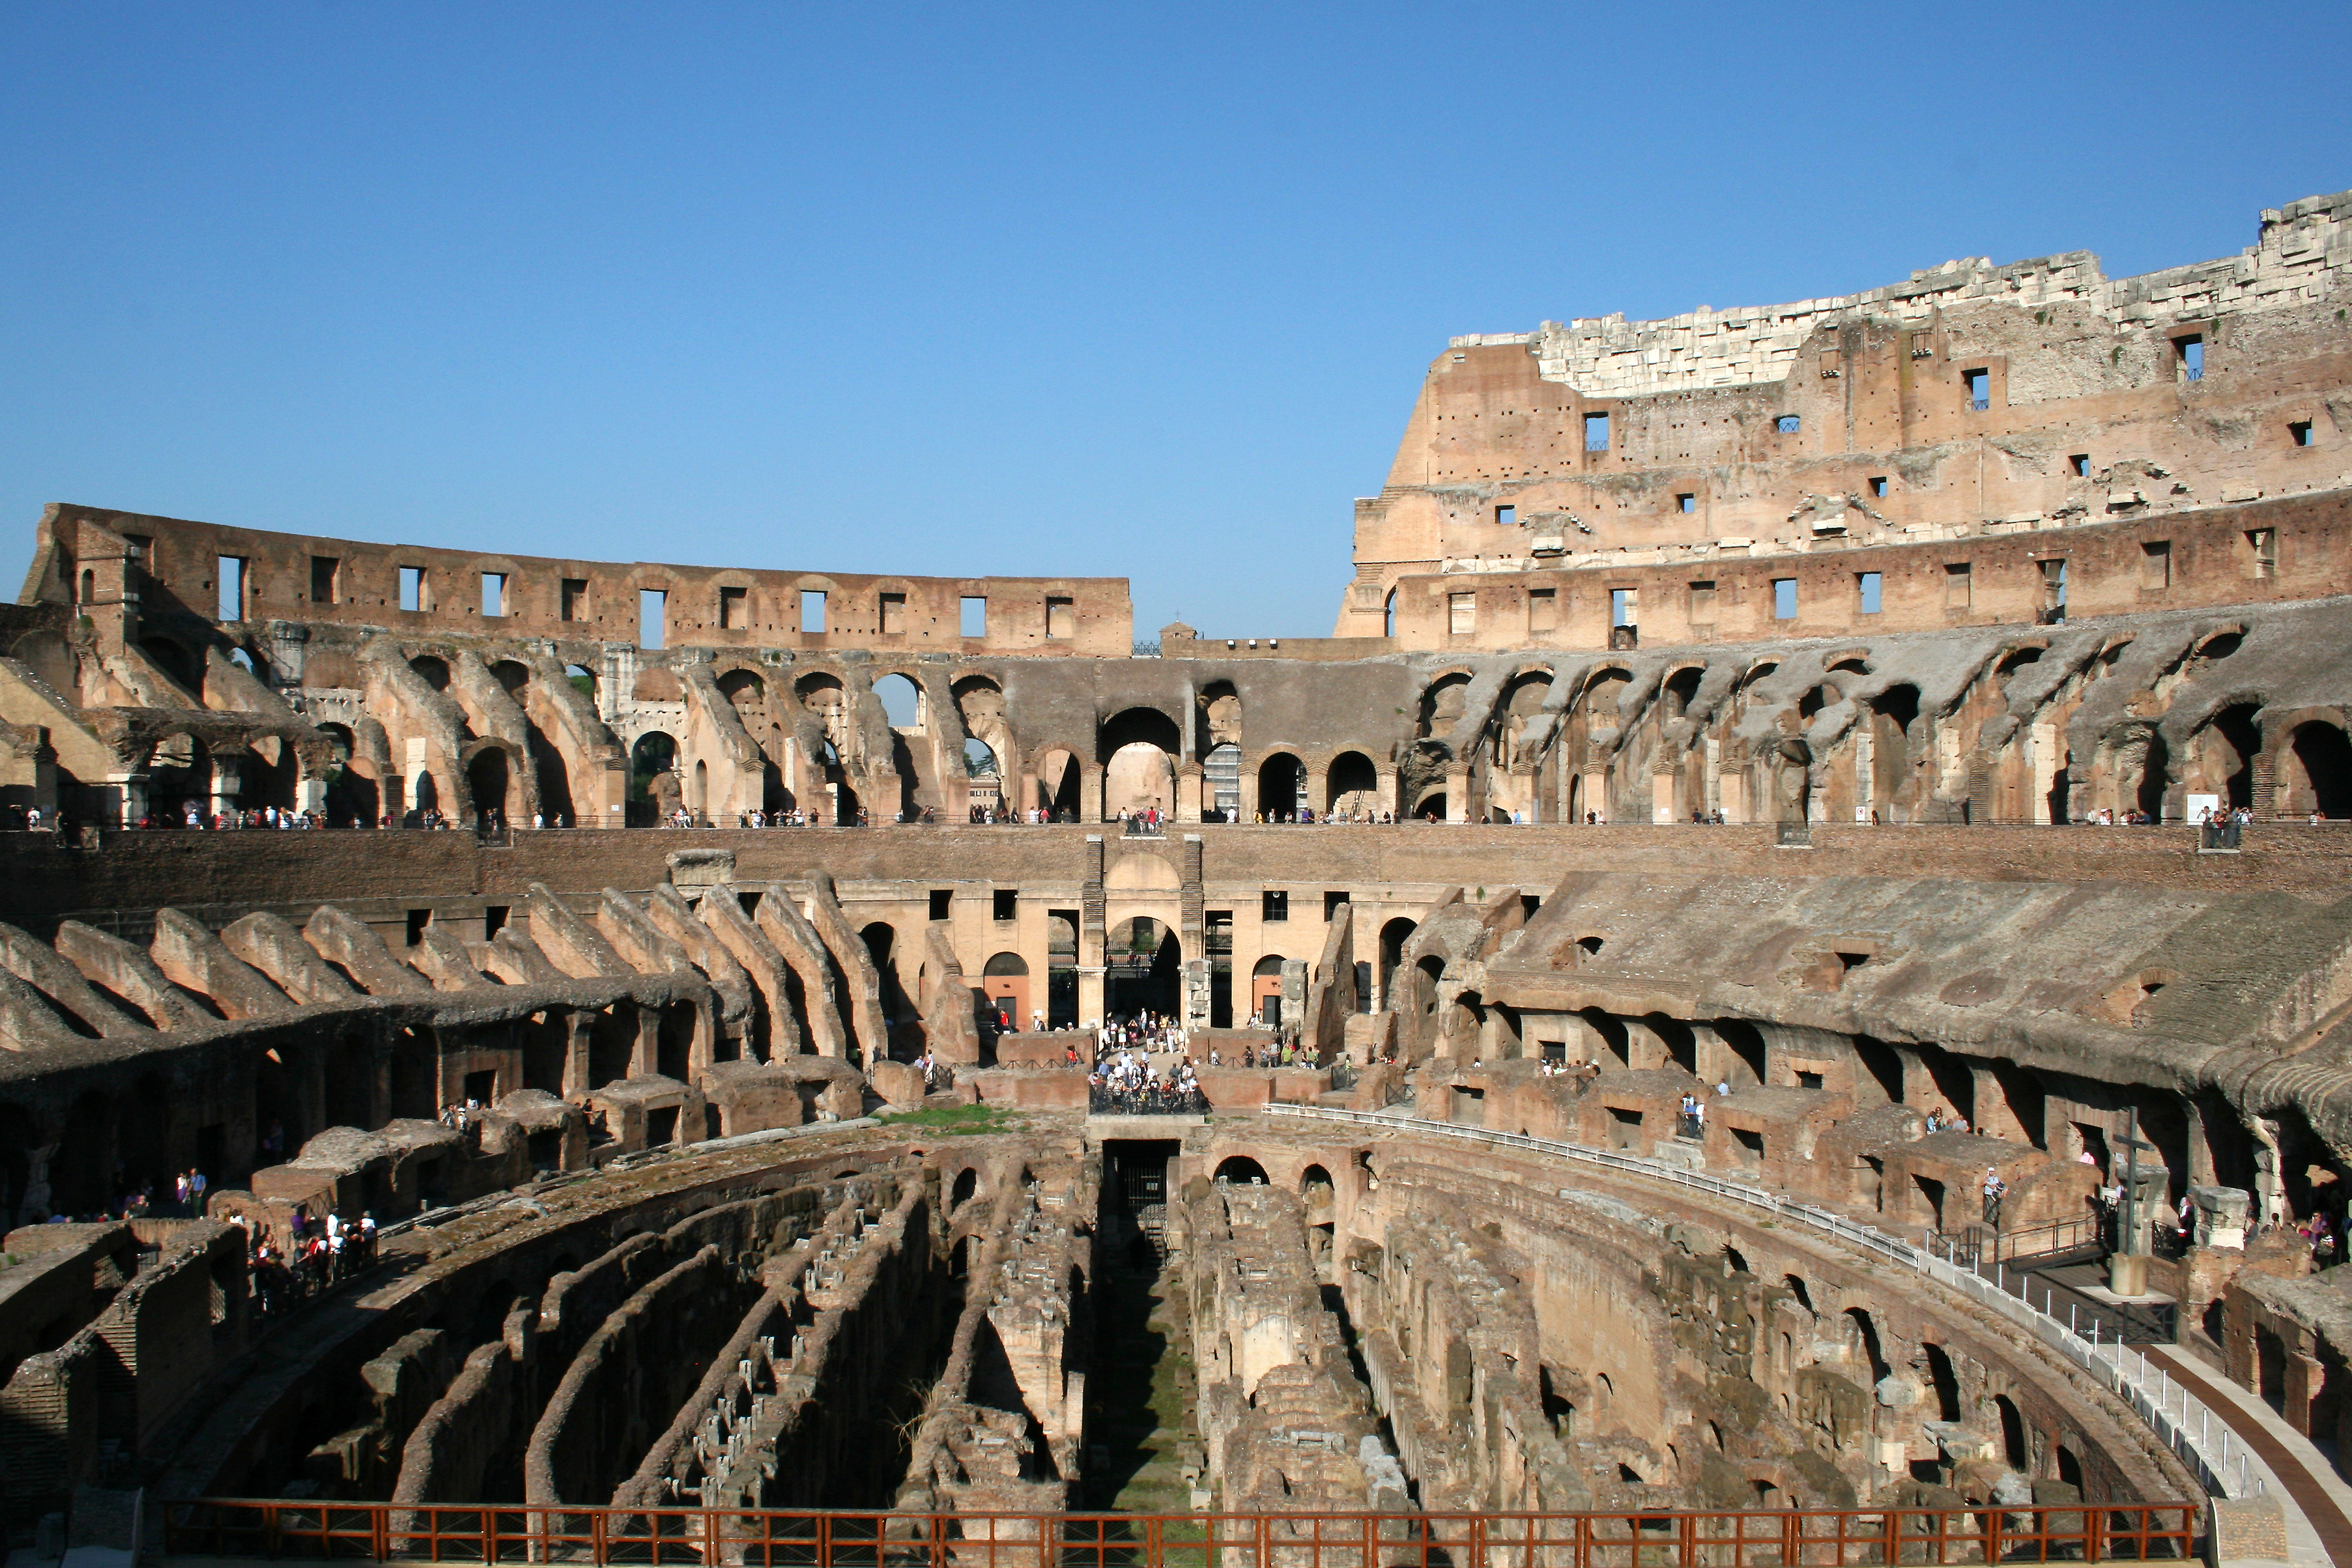 File:0 Colosseum - Rome 111001 (2).JPG - Wikipedia